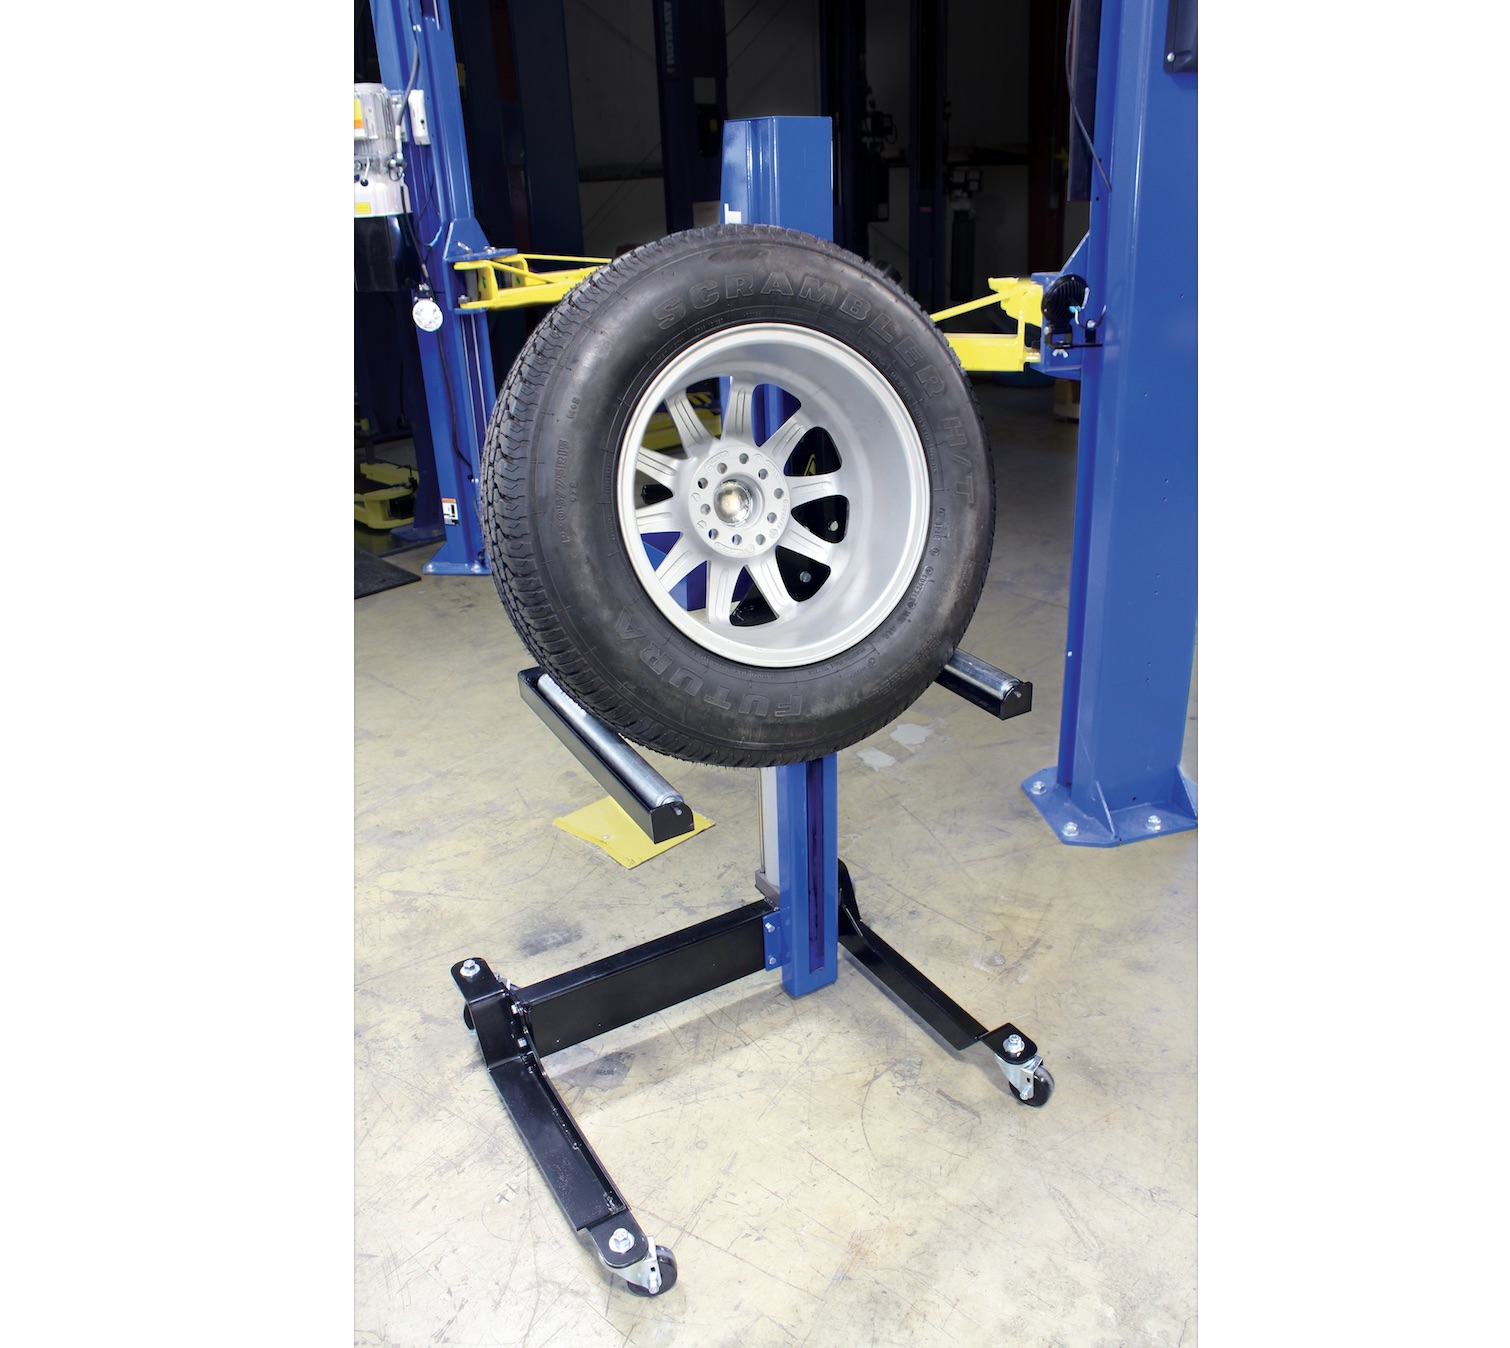 Automotive Lift Safety : Rotary lifts top vehicle lift safety tips auto